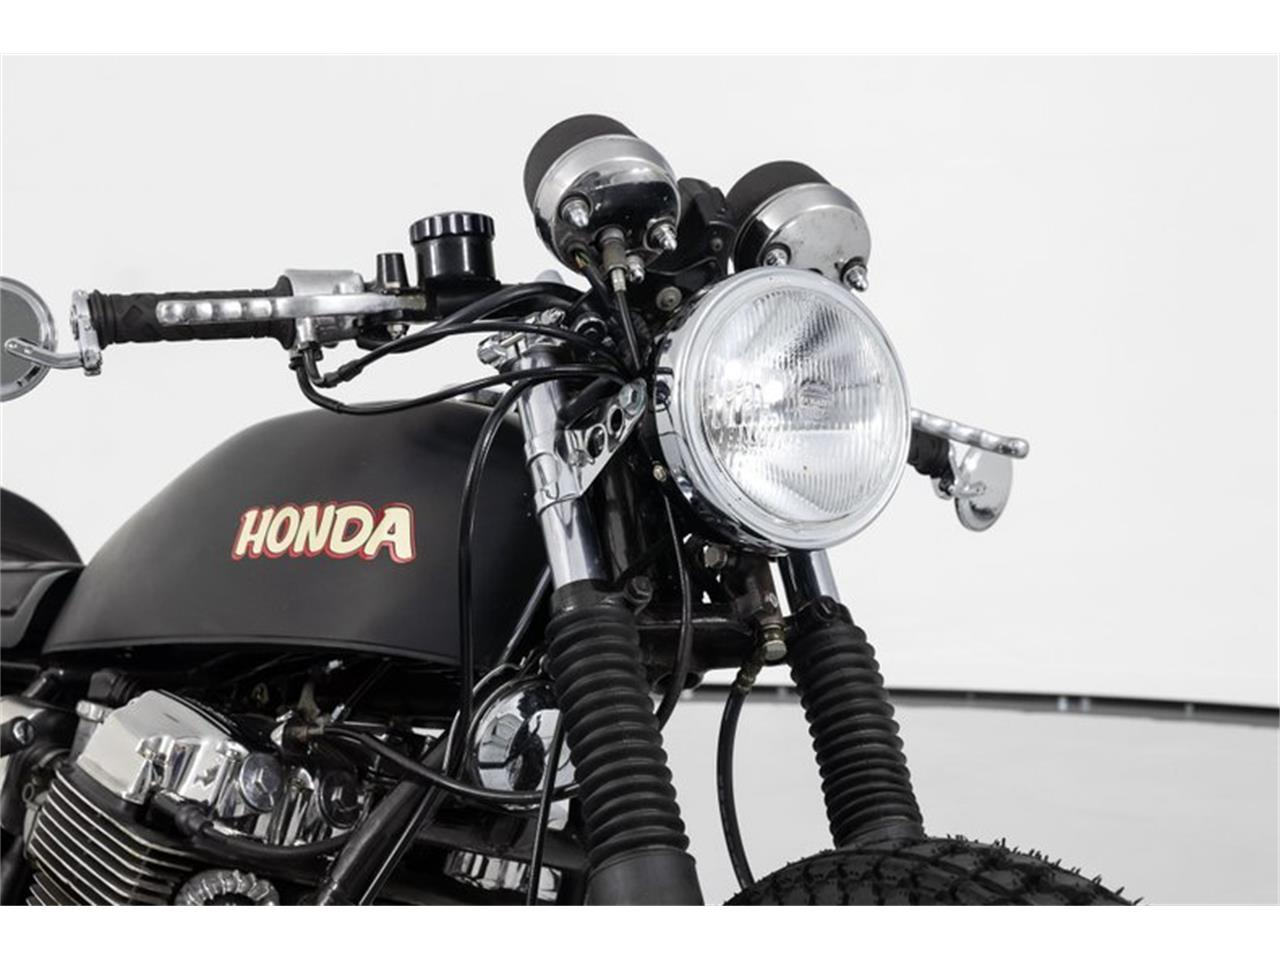 1976 Honda Motorcycle (CC-1257746) for sale in St. Charles, Missouri